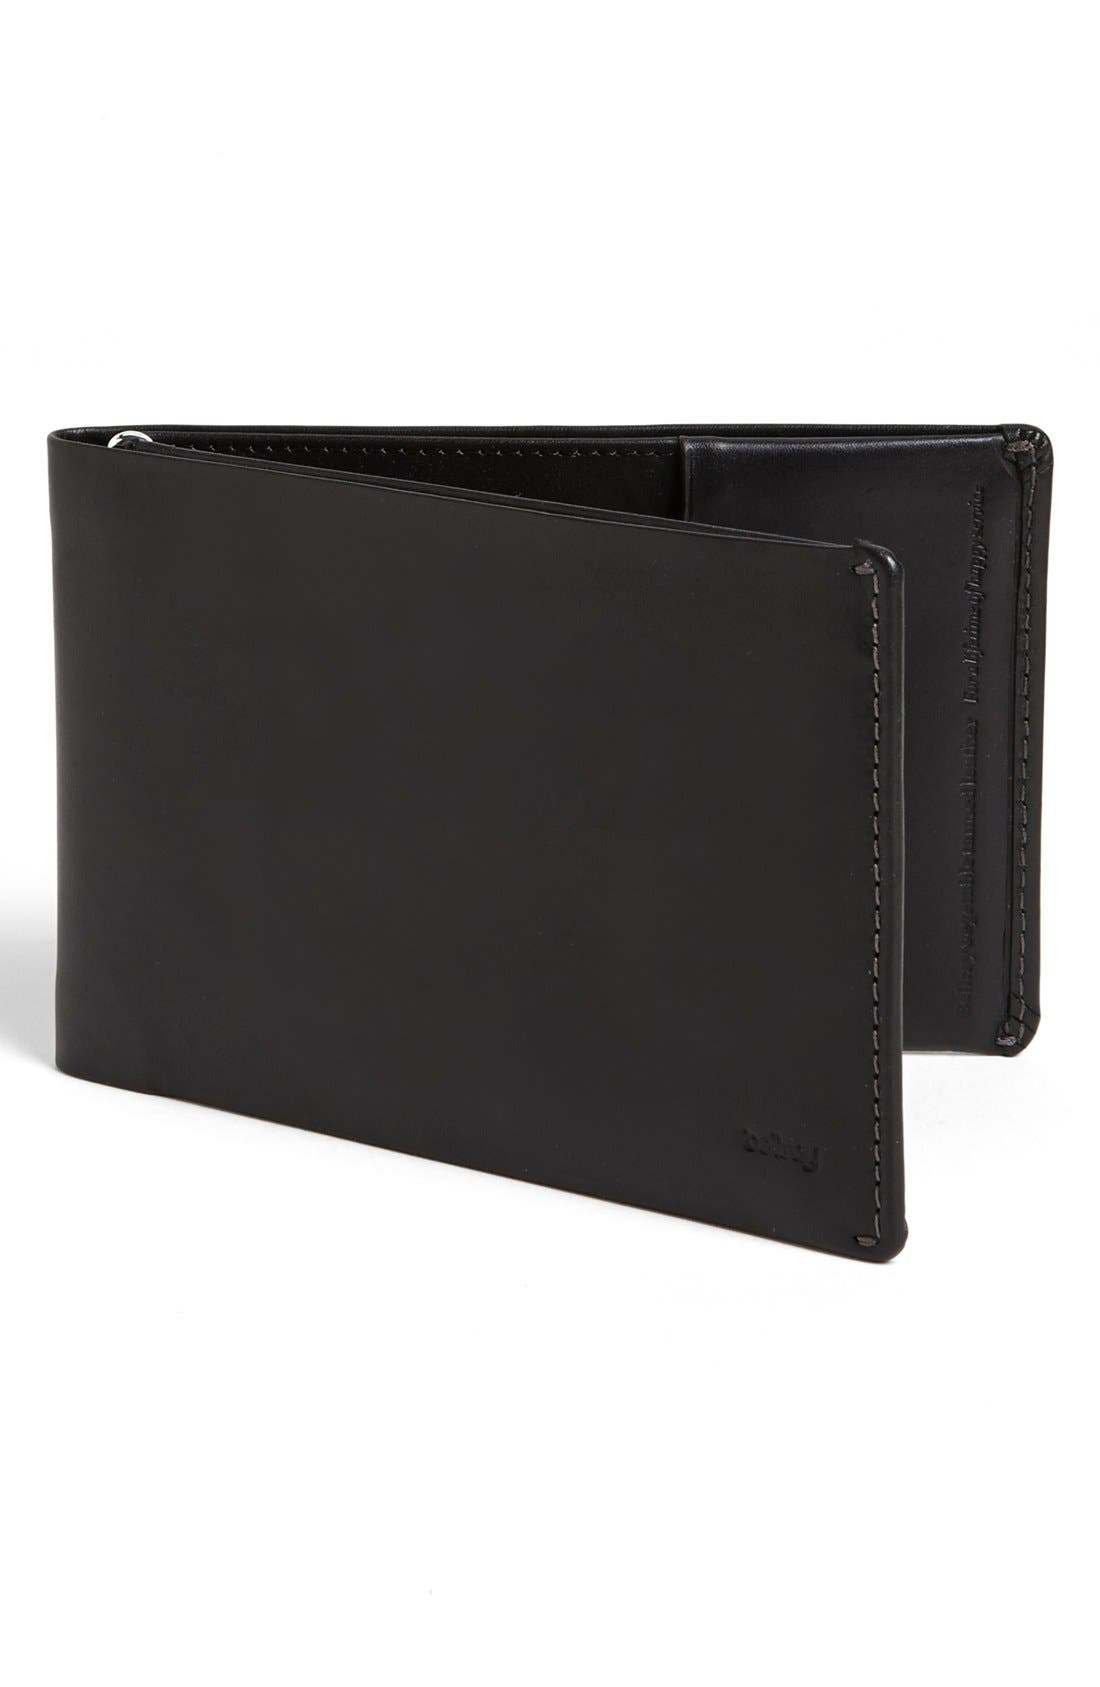 Main Image - Bellroy Travel Wallet